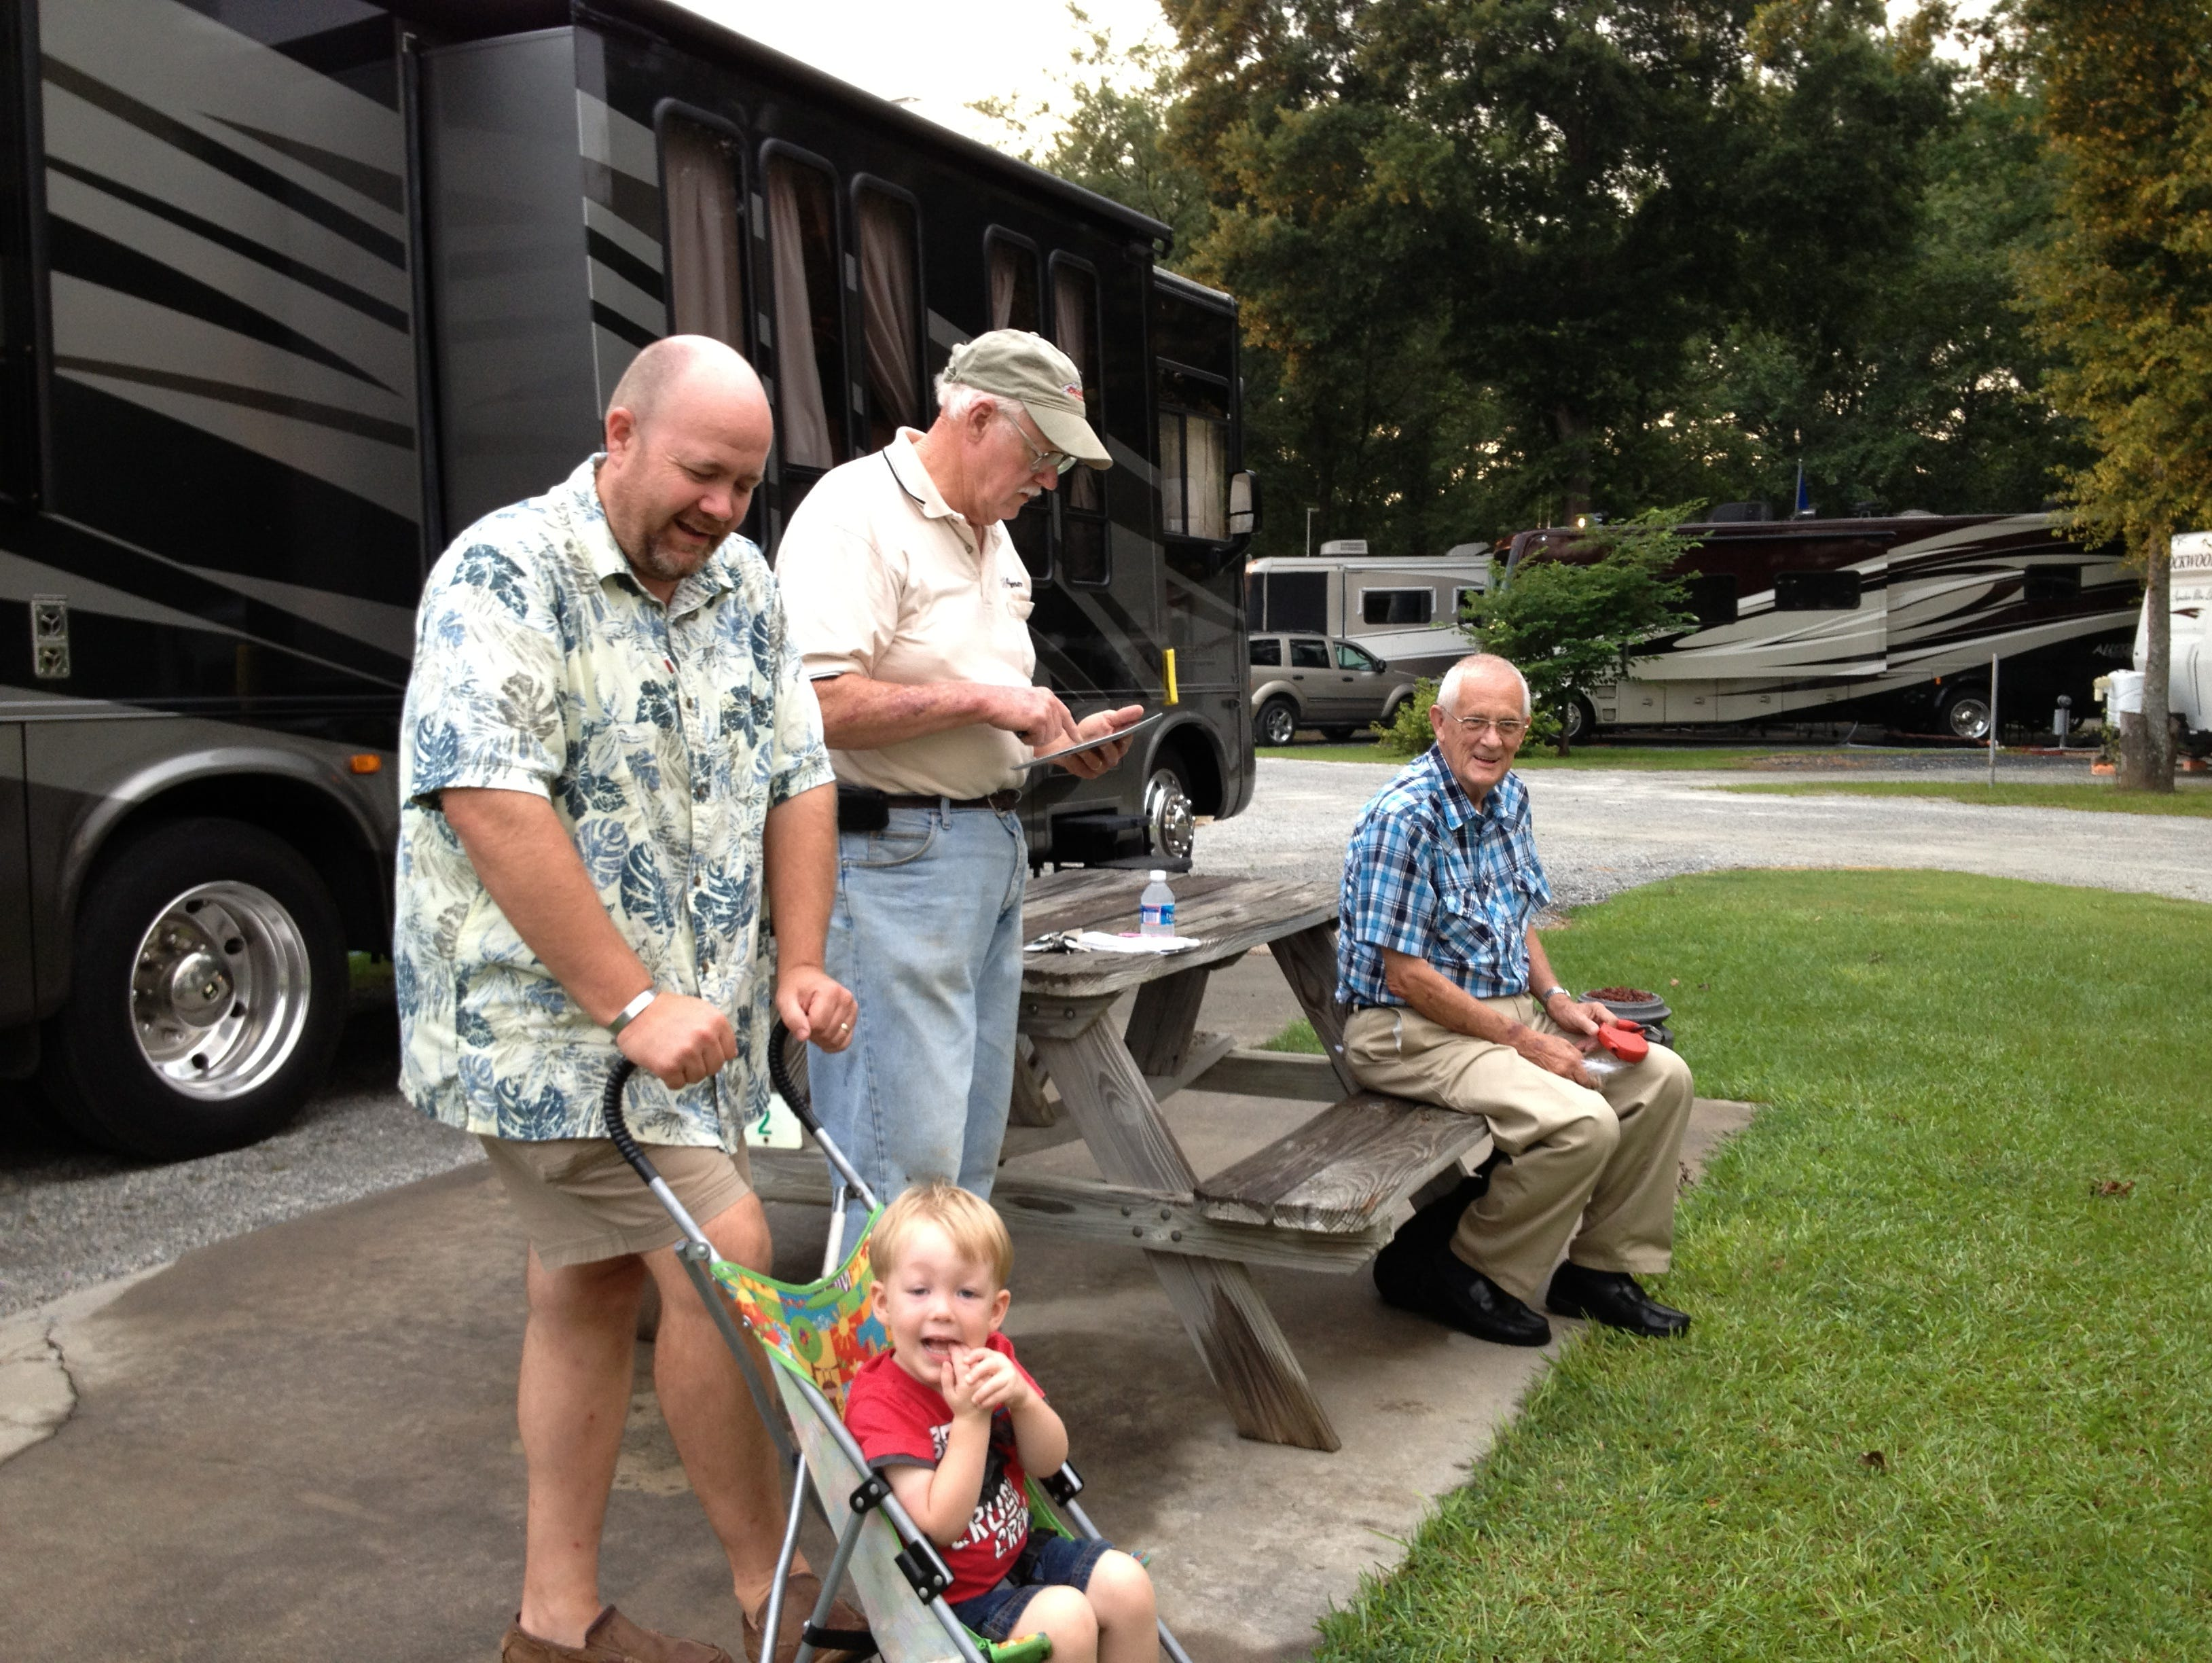 Twin Oaks guests, from left to right: Andy Schneider and his son Caleb (in the stroller), John Newham (using an iPad to find the missing owner's manual for O'Donnell's RV), and Ernie Gaines.